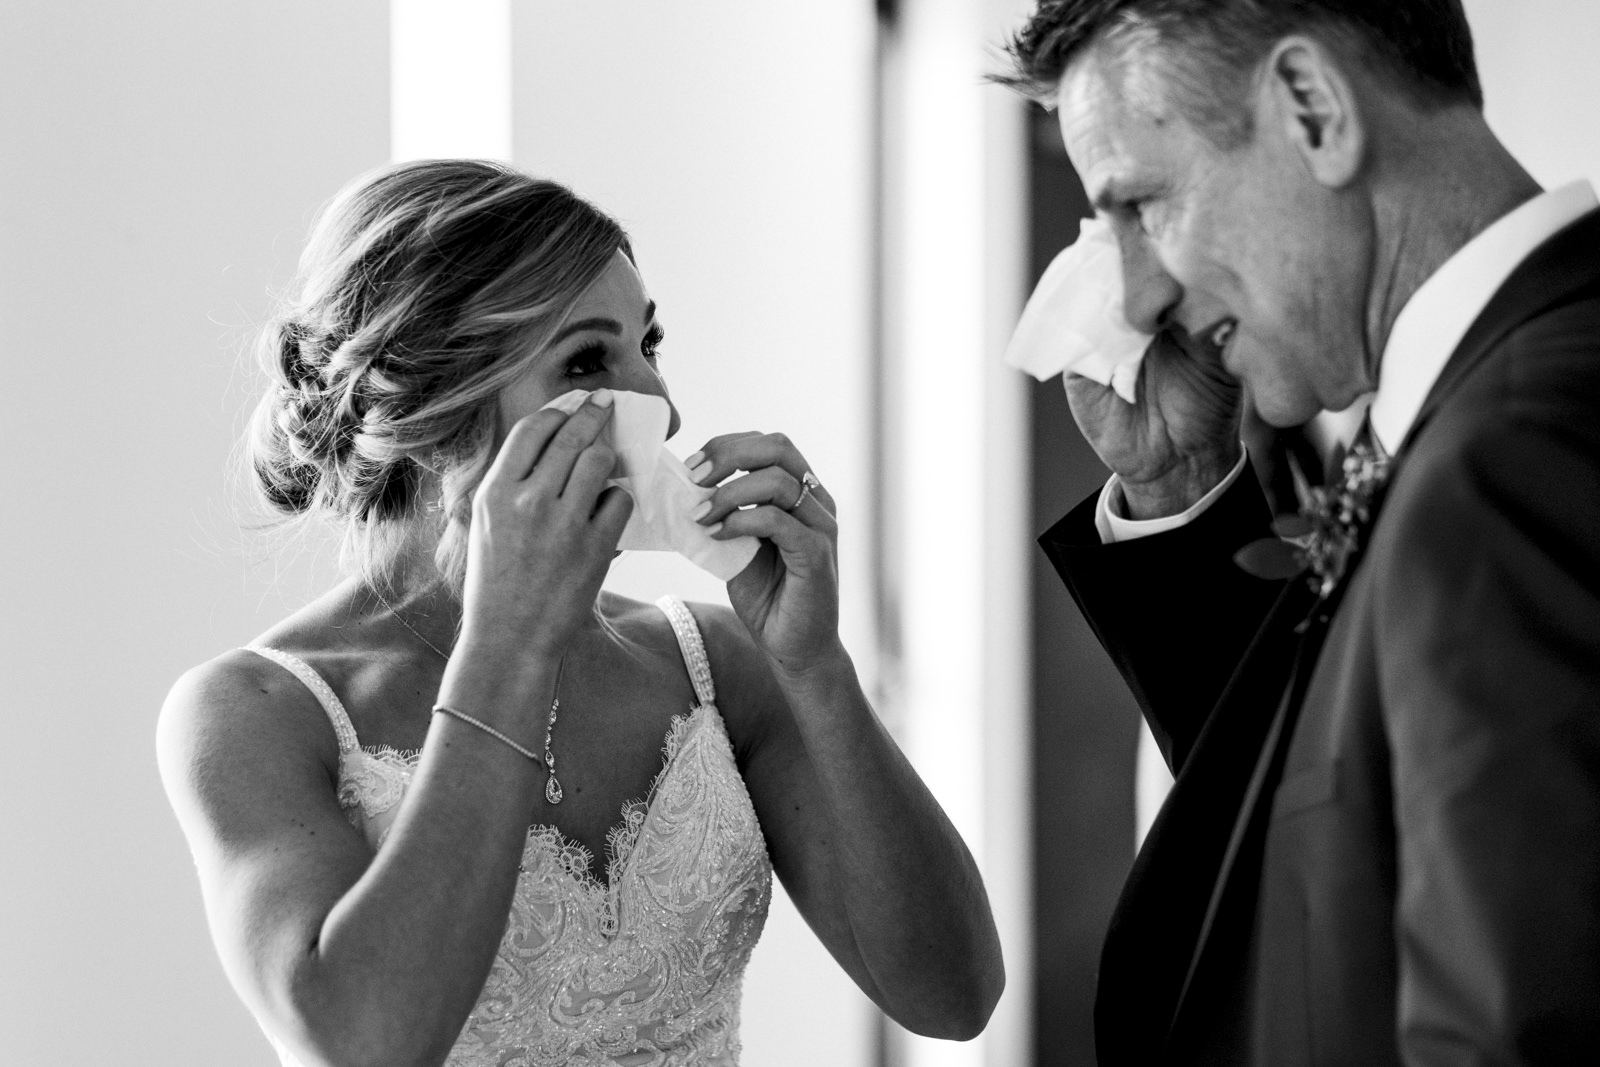 Emotional first look with bride and her father before wedding ceremony.